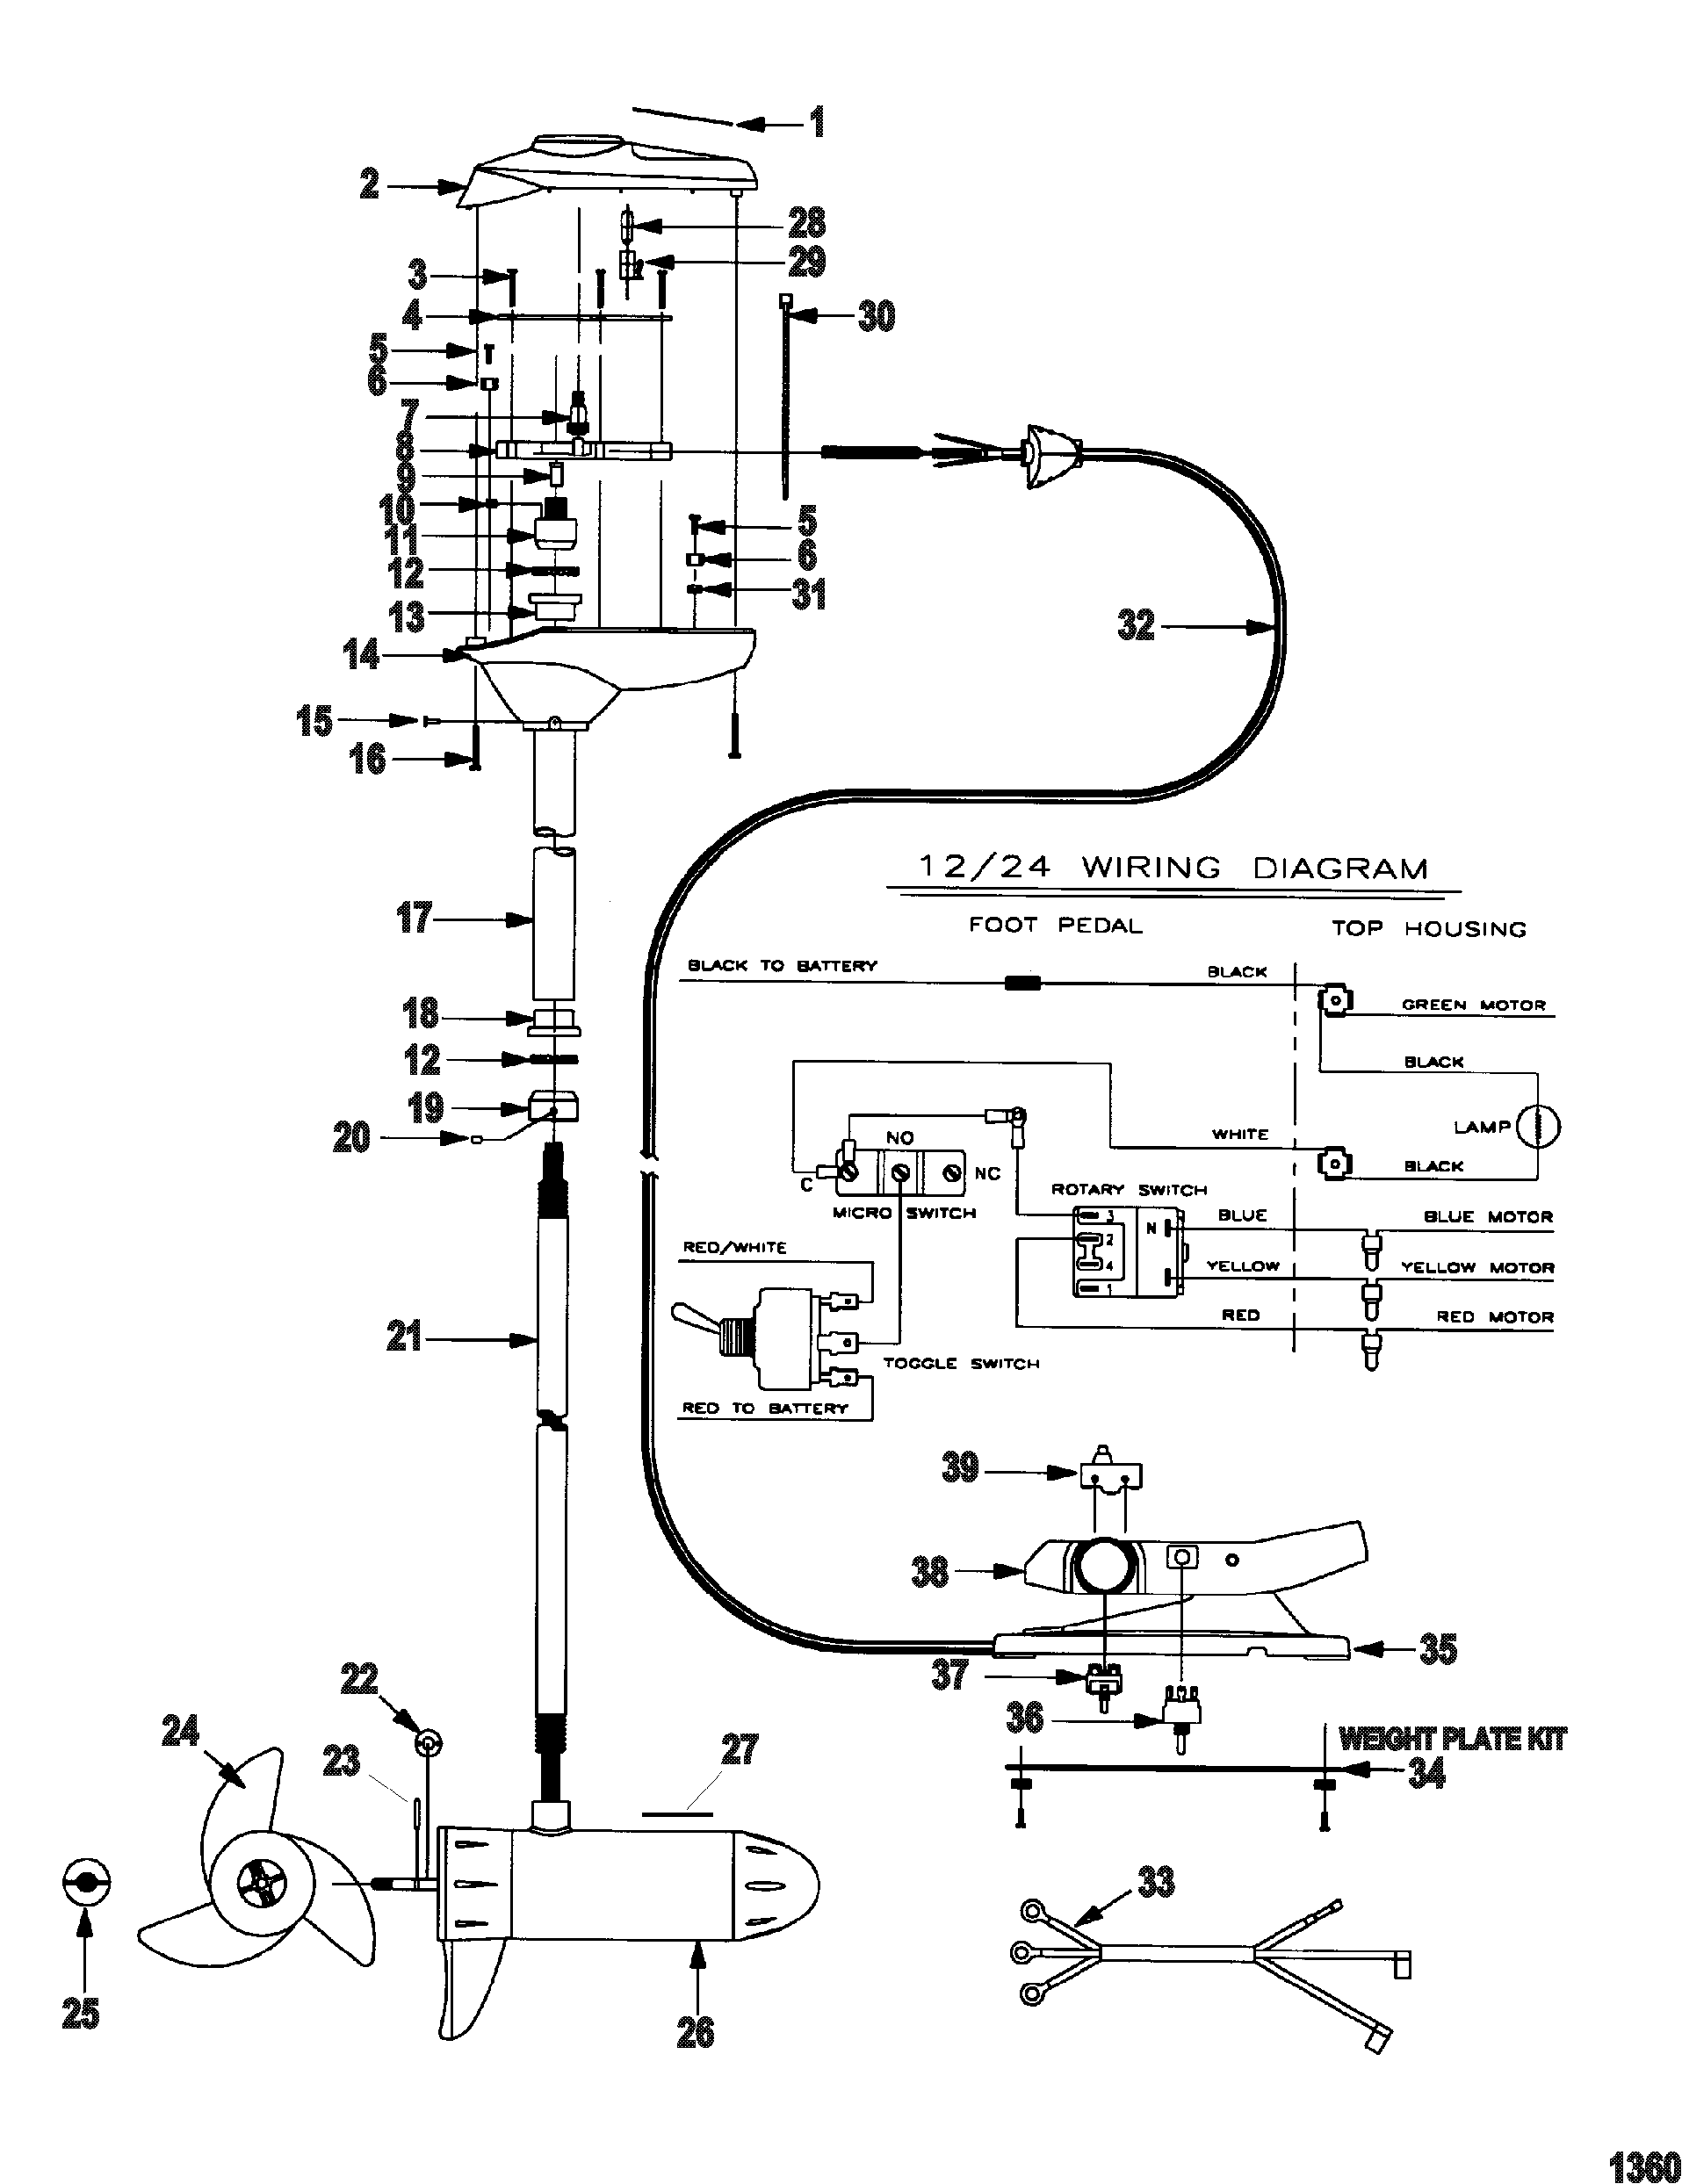 motorguide parts diagram  motorguide  get free image about